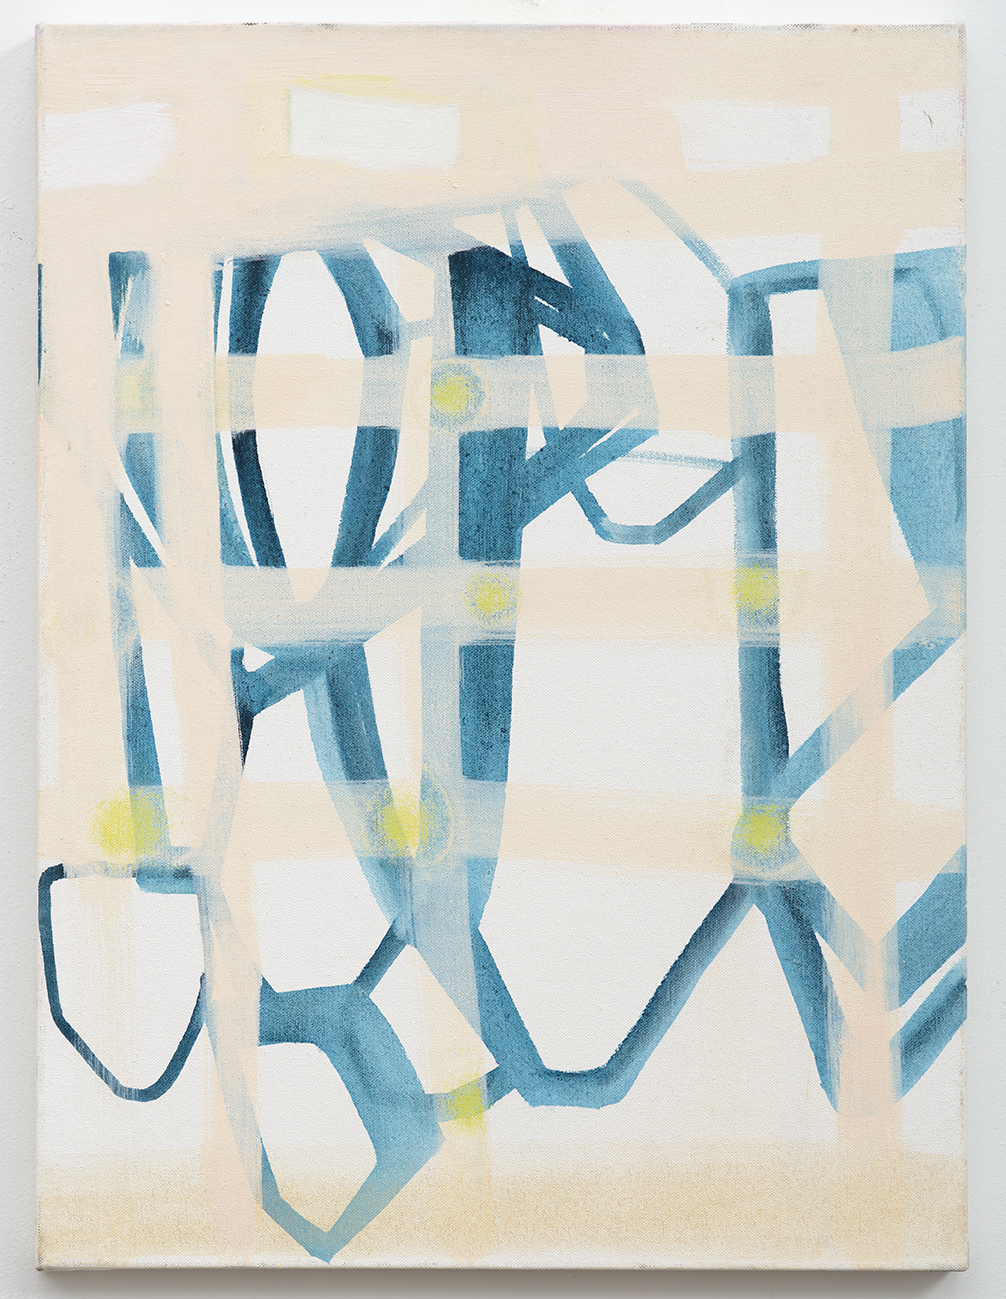 Rebeca Puga  Curtain,  2014 Oil on canvas 24 x 18 inches